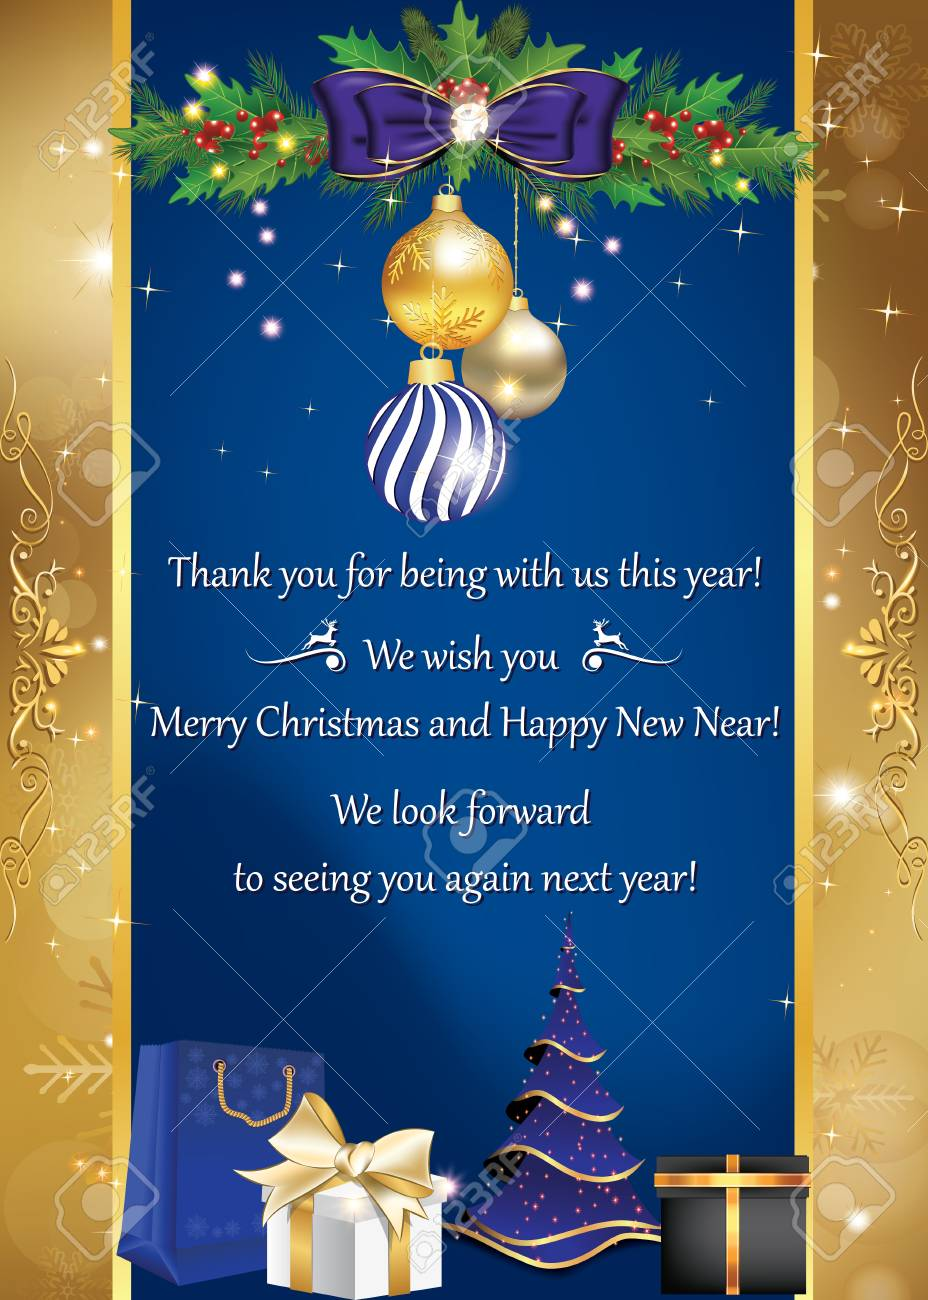 Business card for winter holidays thank you for being with us business card for winter holidays thank you for being with us this year merry colourmoves